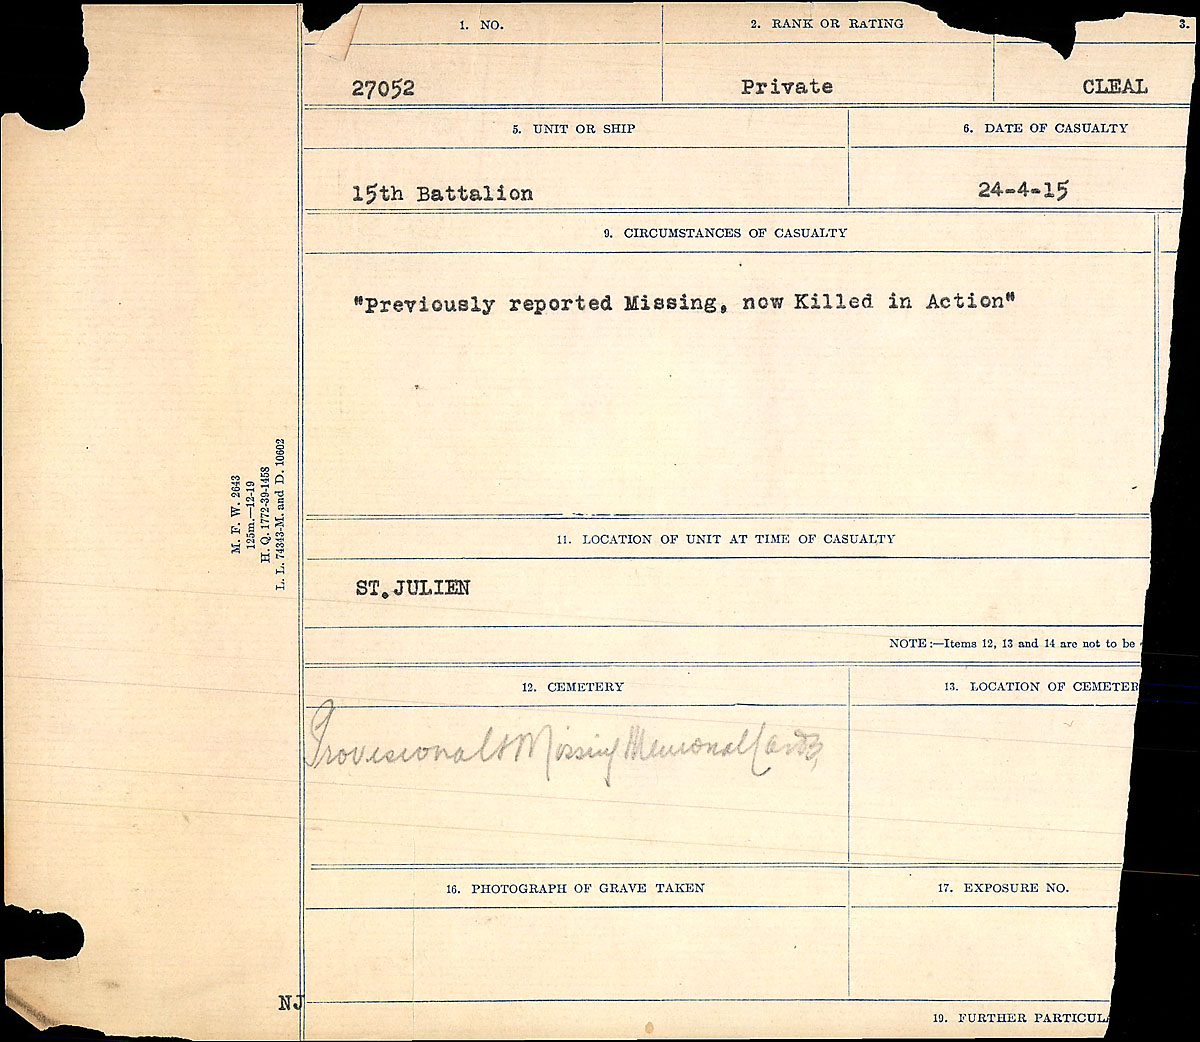 Title: Circumstances of Death Registers, First World War - Mikan Number: 46246 - Microform: 31829_B016730